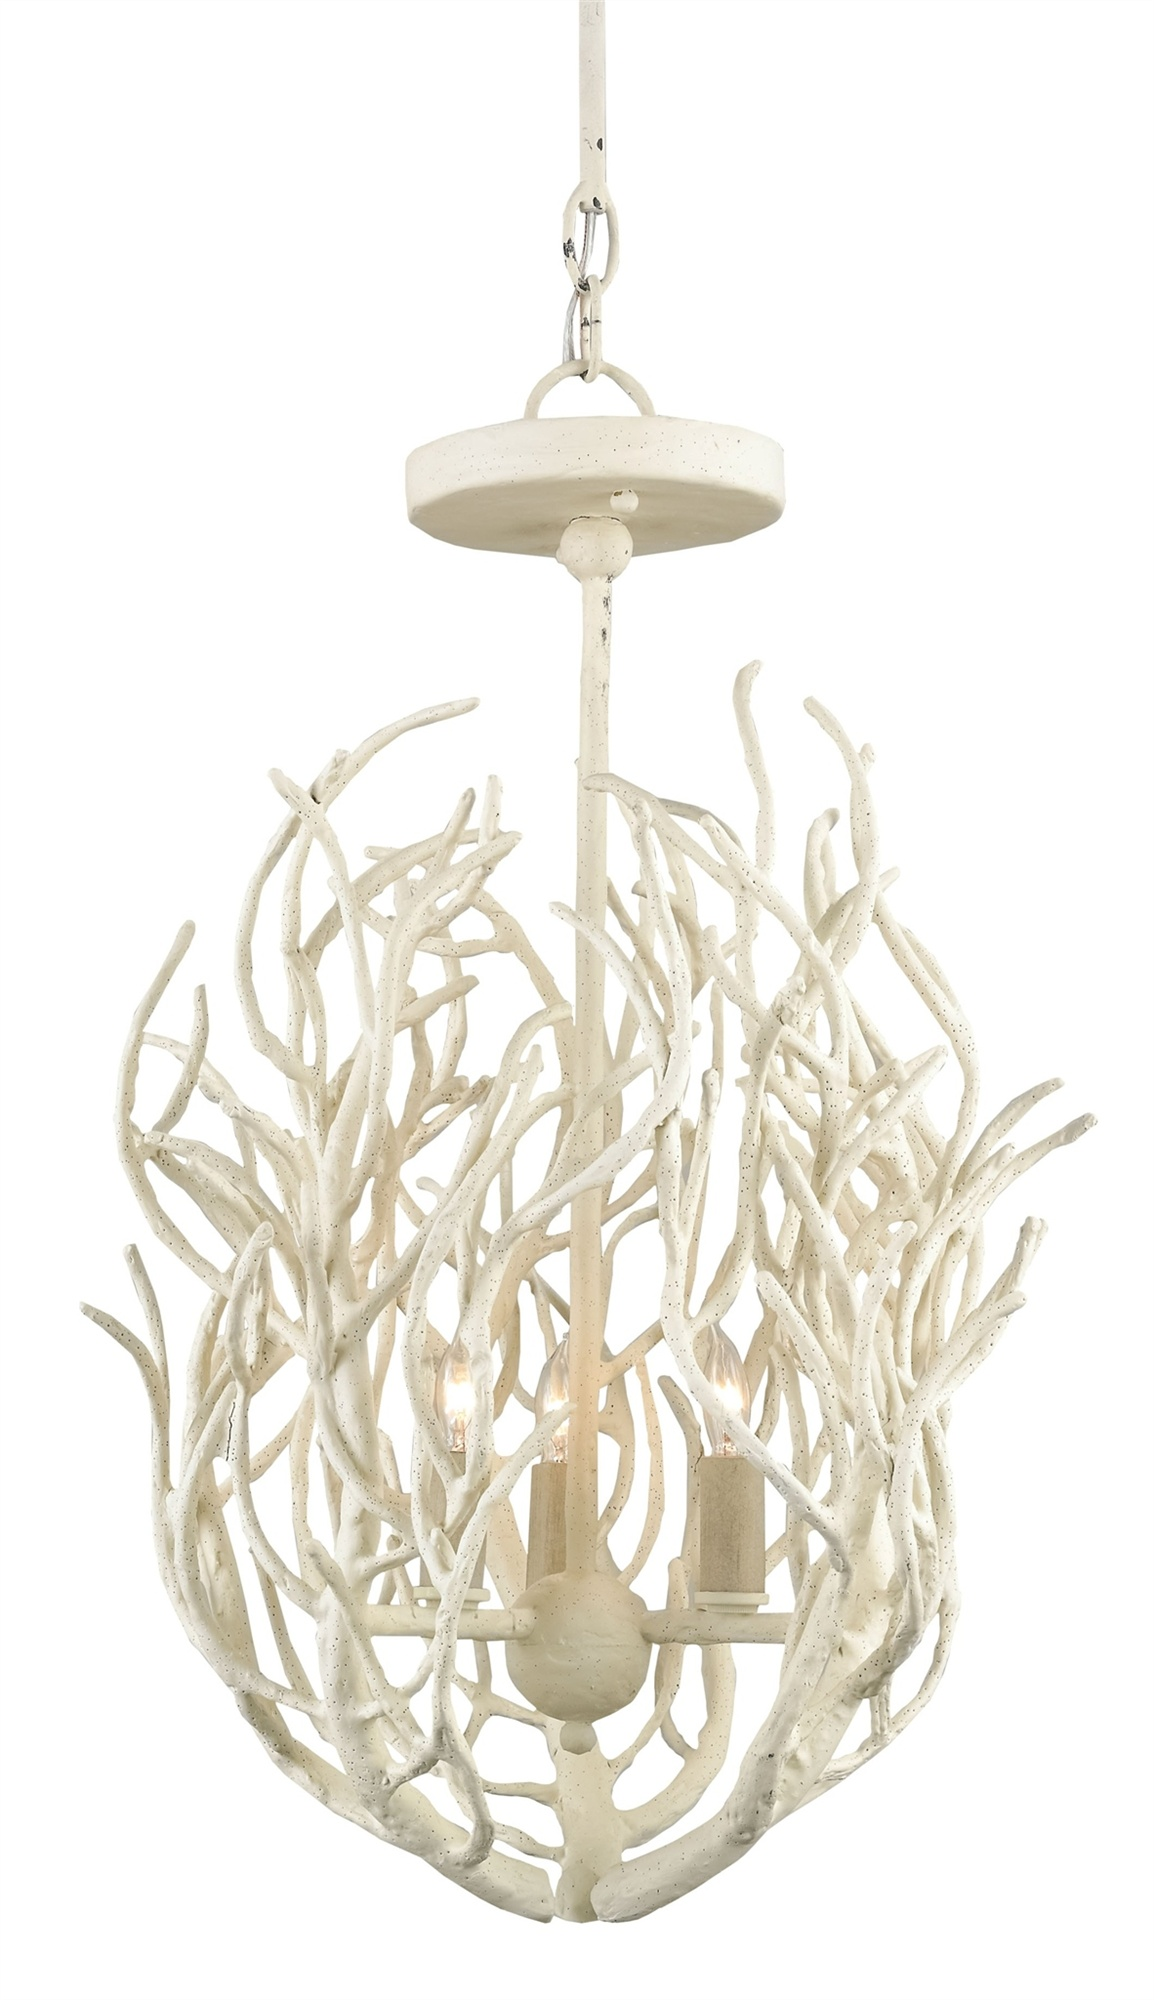 Currey & Company Eventide Chandelier